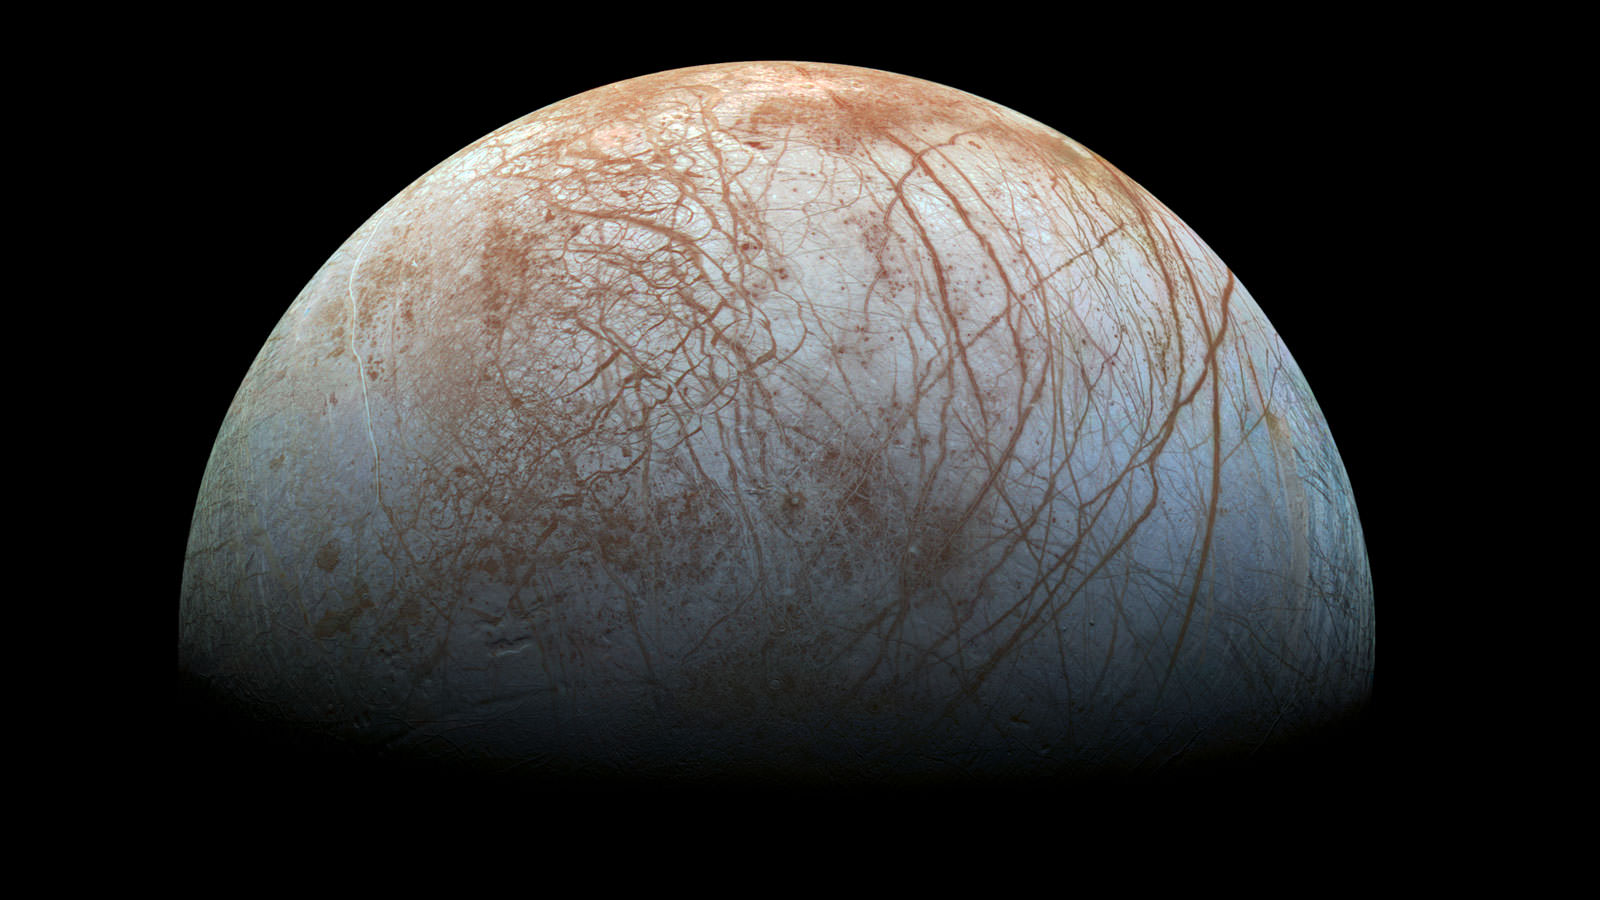 """A """"true color"""" image of the surface of Jupiter's moon Europa as seen by the Galileo spacecraft. - Image credit: NASA/JPL-Caltech/SETI Institute"""